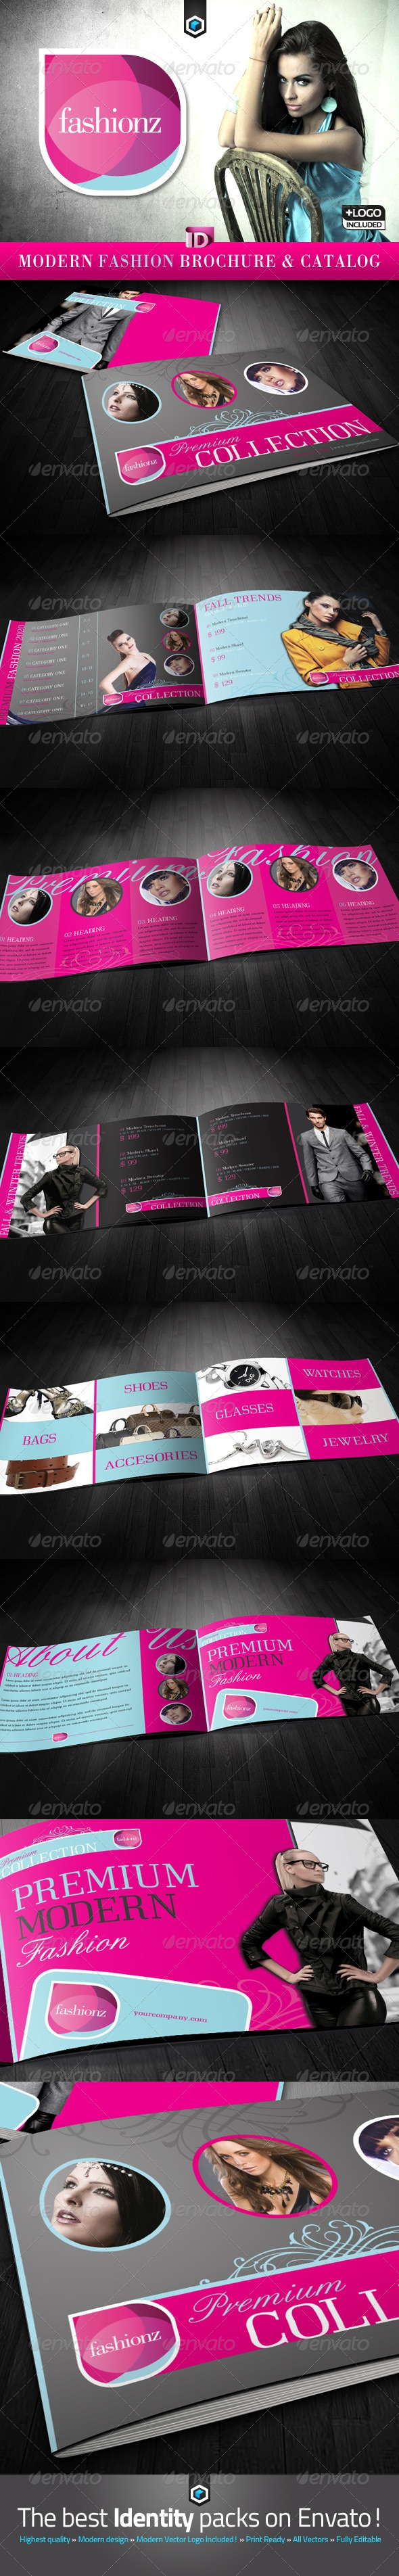 15 Best Images About Fashion Brochure On Pinterest Magazine Design Fashion Layouts And